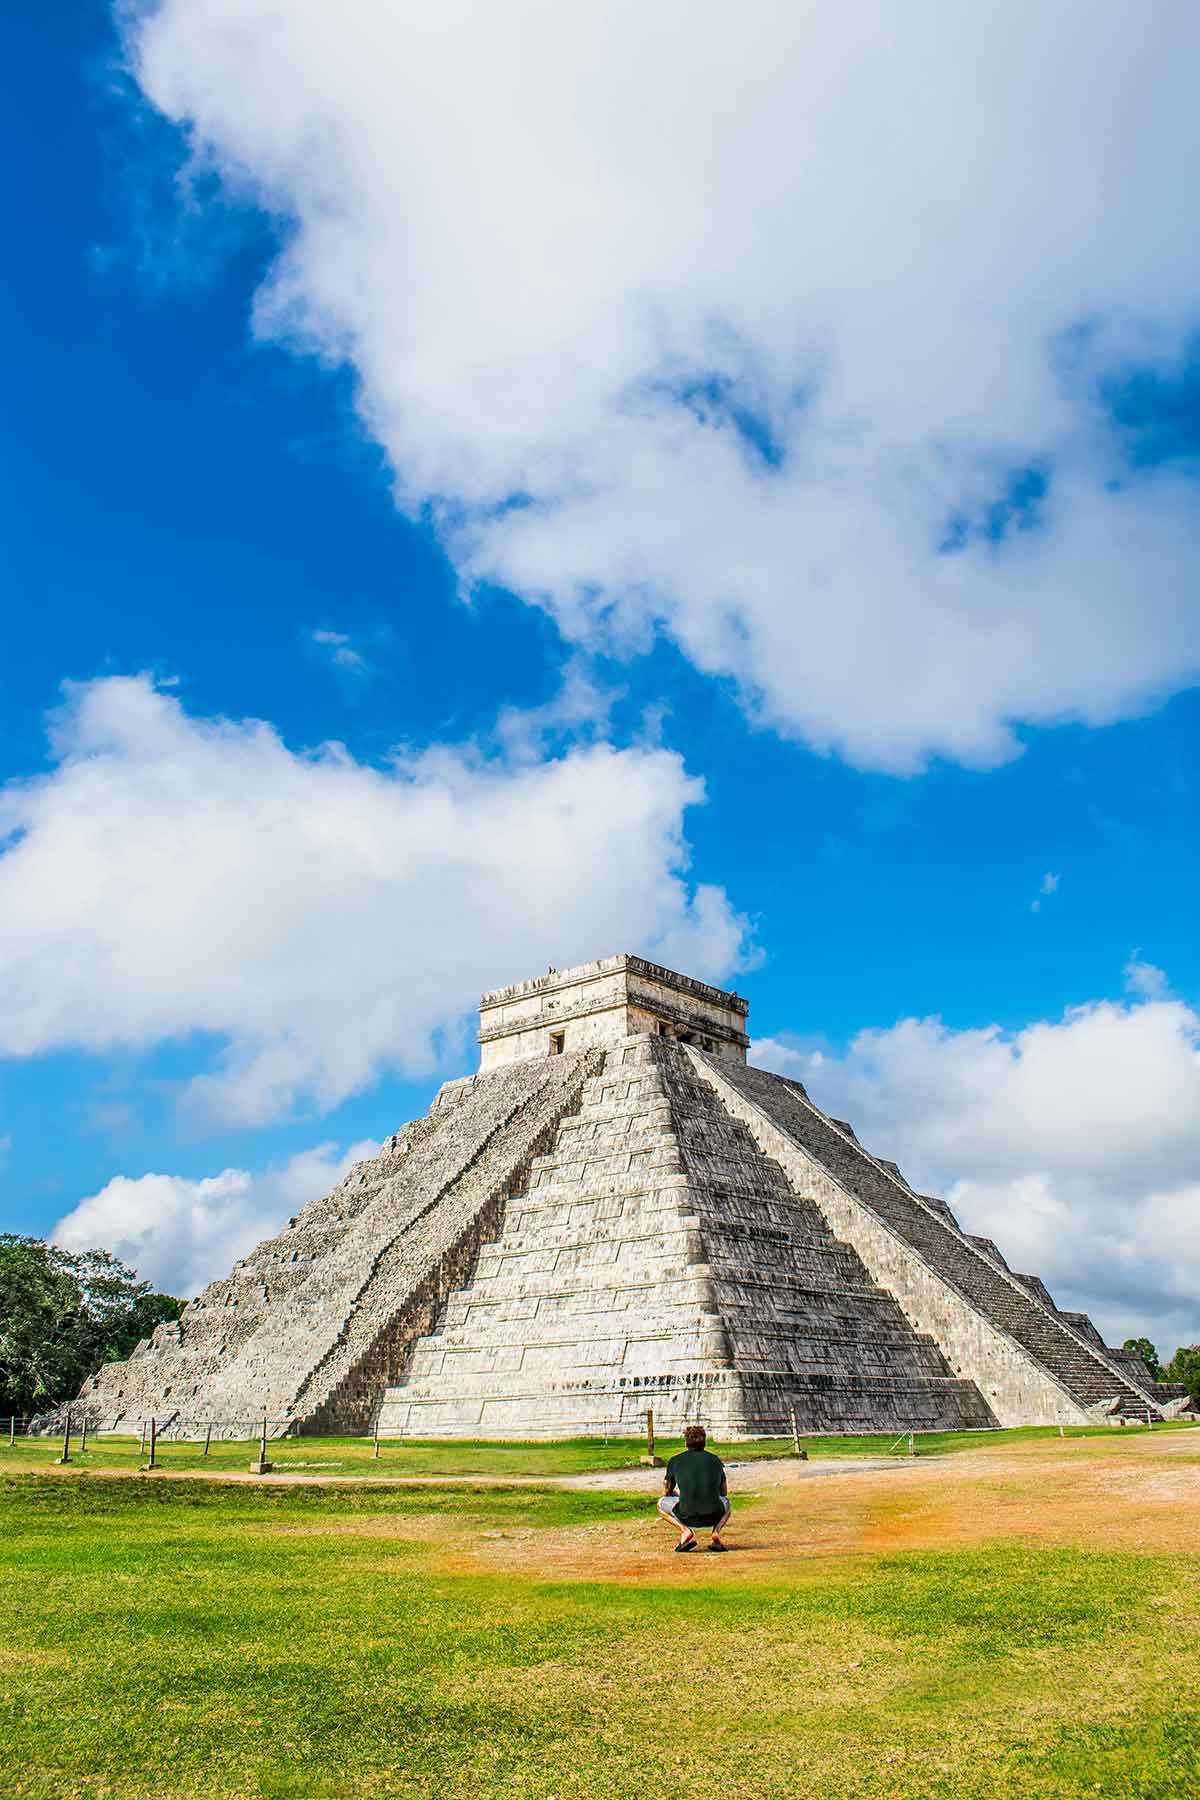 20 EPIC Valladolid Instagram spots for travelling Mexico. A man kneels in front of the main pyramid at Chichen Itza